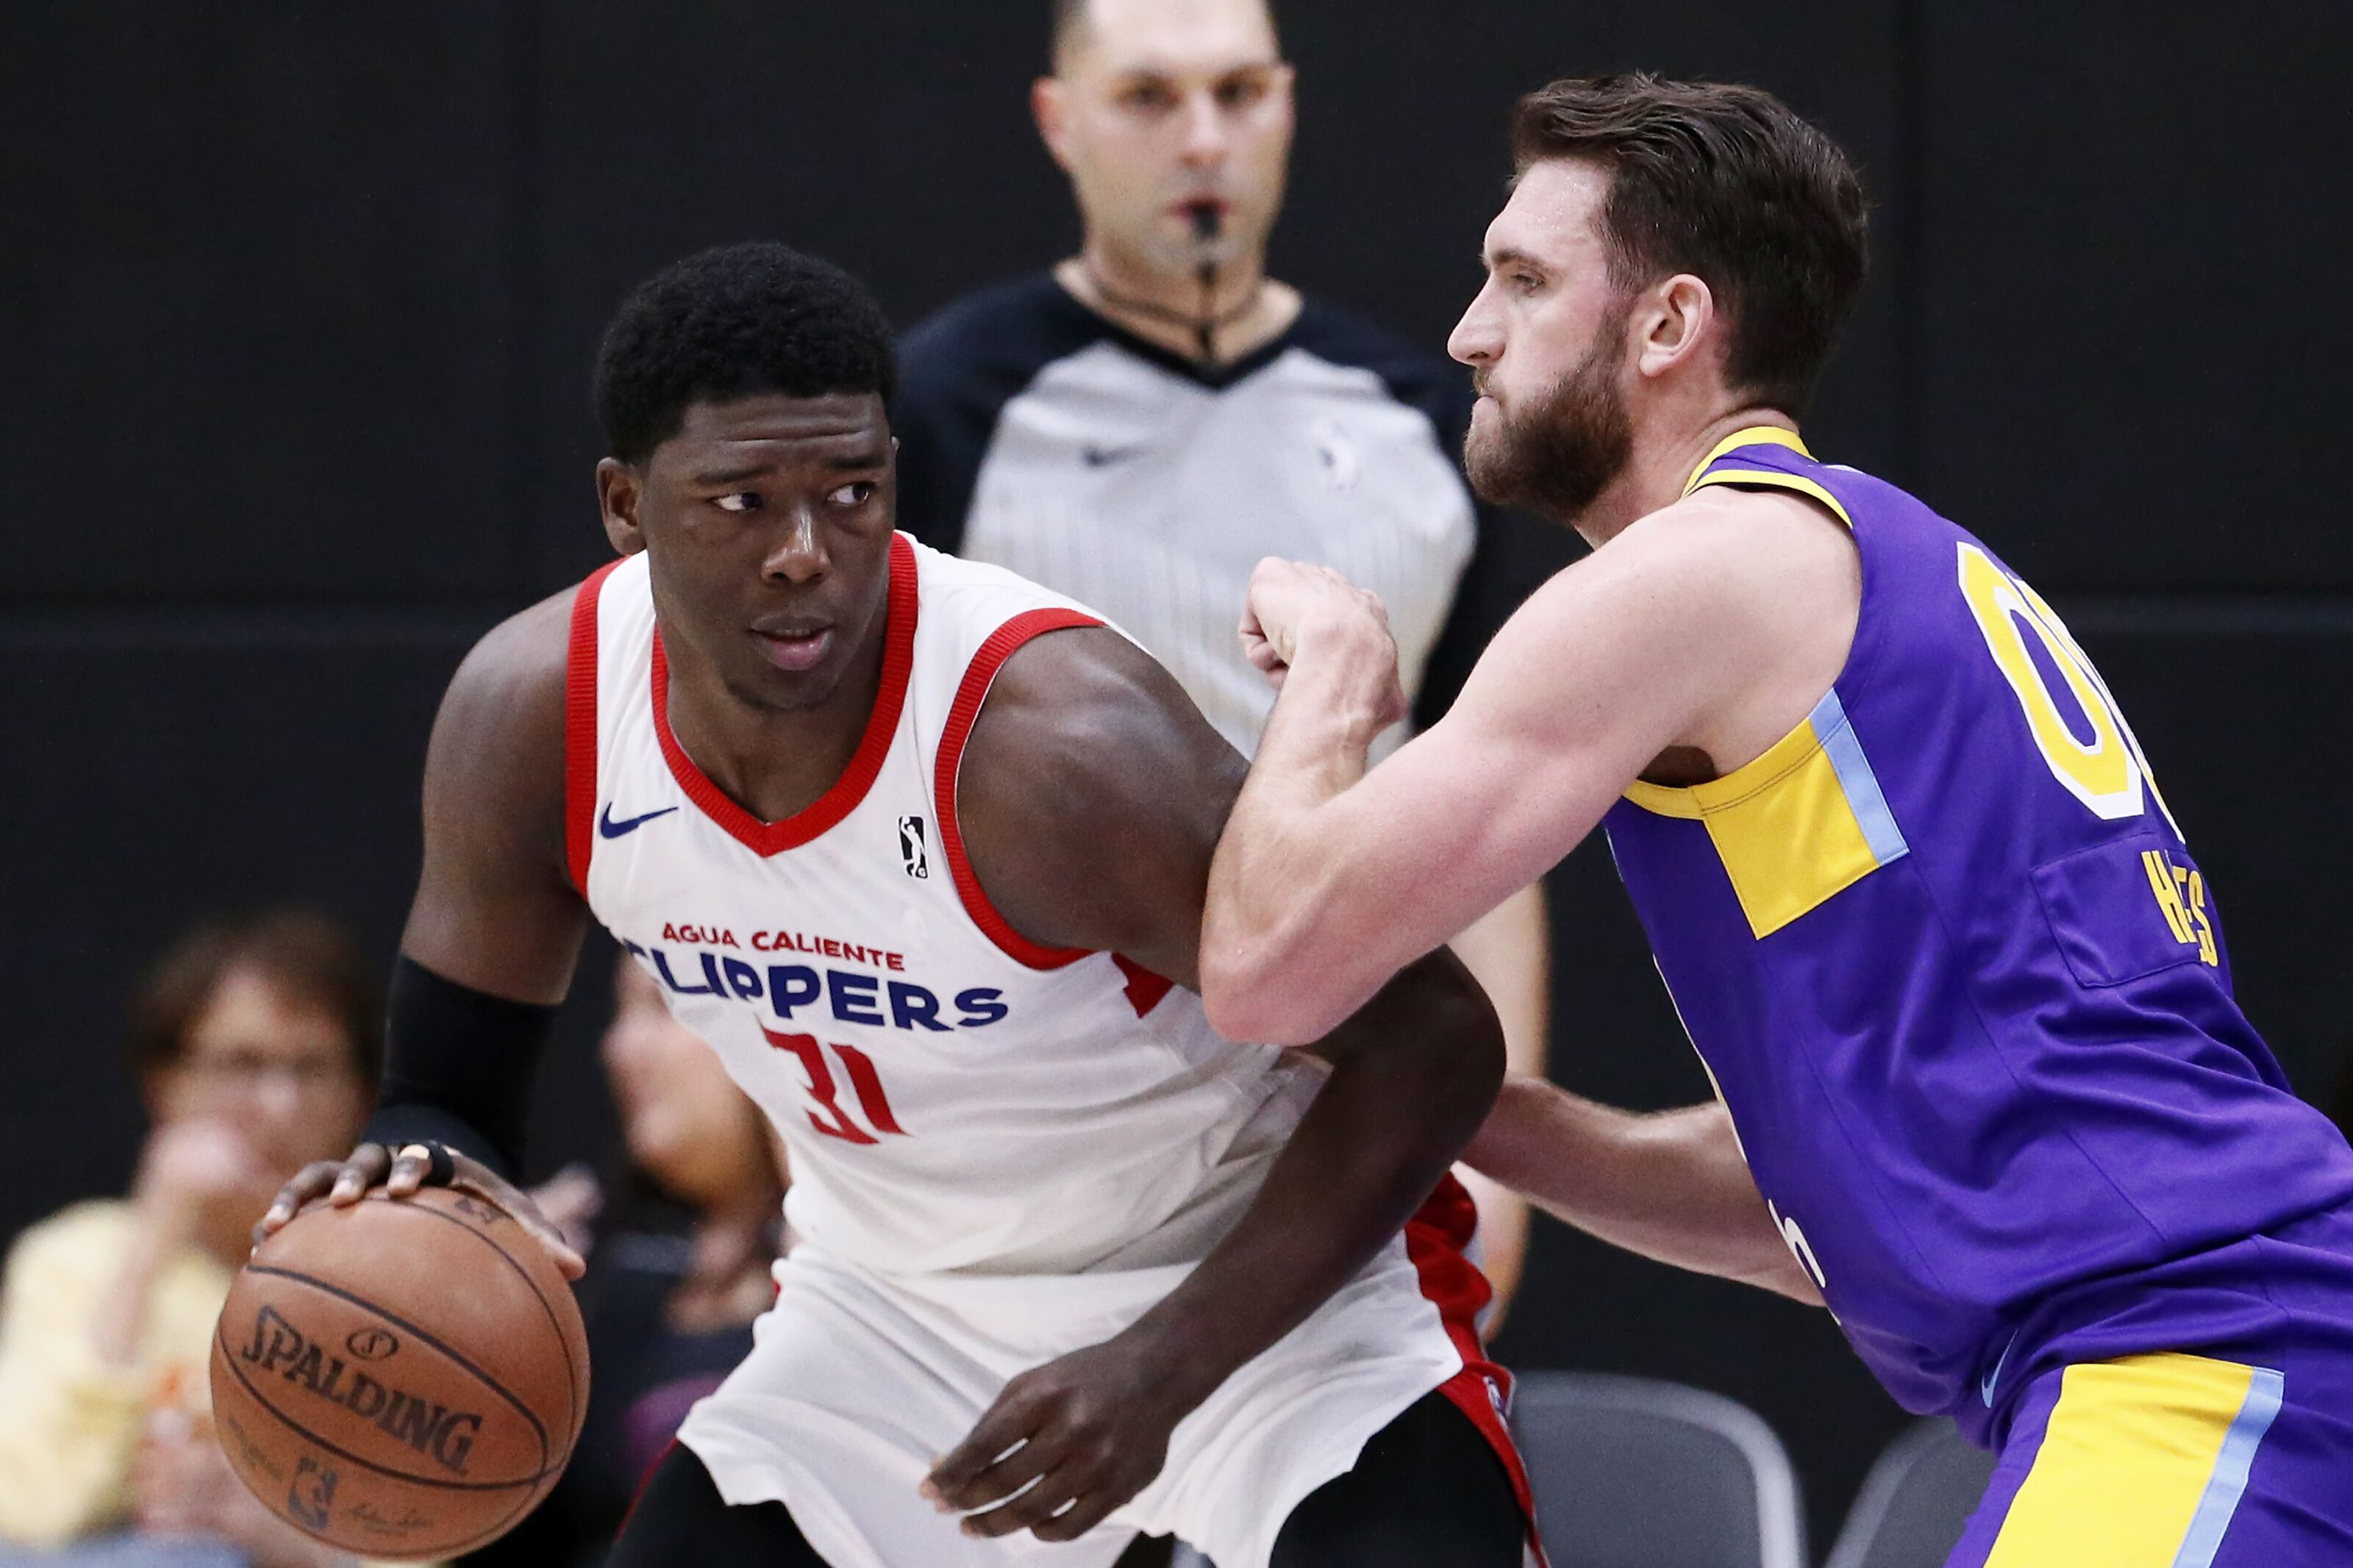 24f5c87f4c44 LA Clippers center Angel Delgado named G League Rookie of the Year